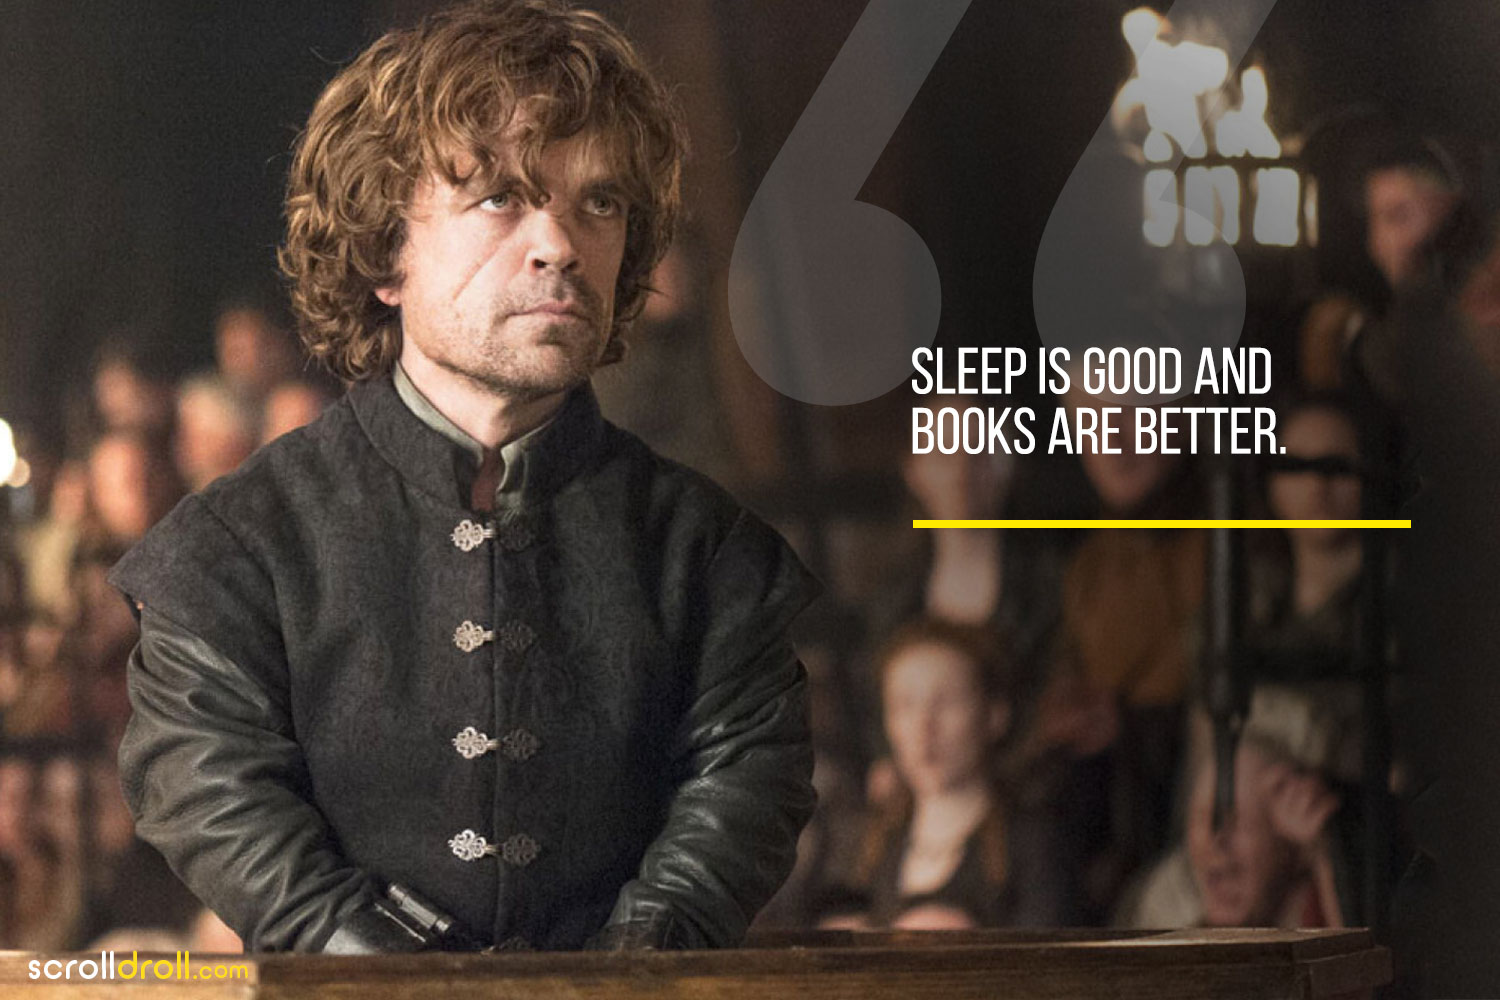 Tyrion-Sleep is good and books are better